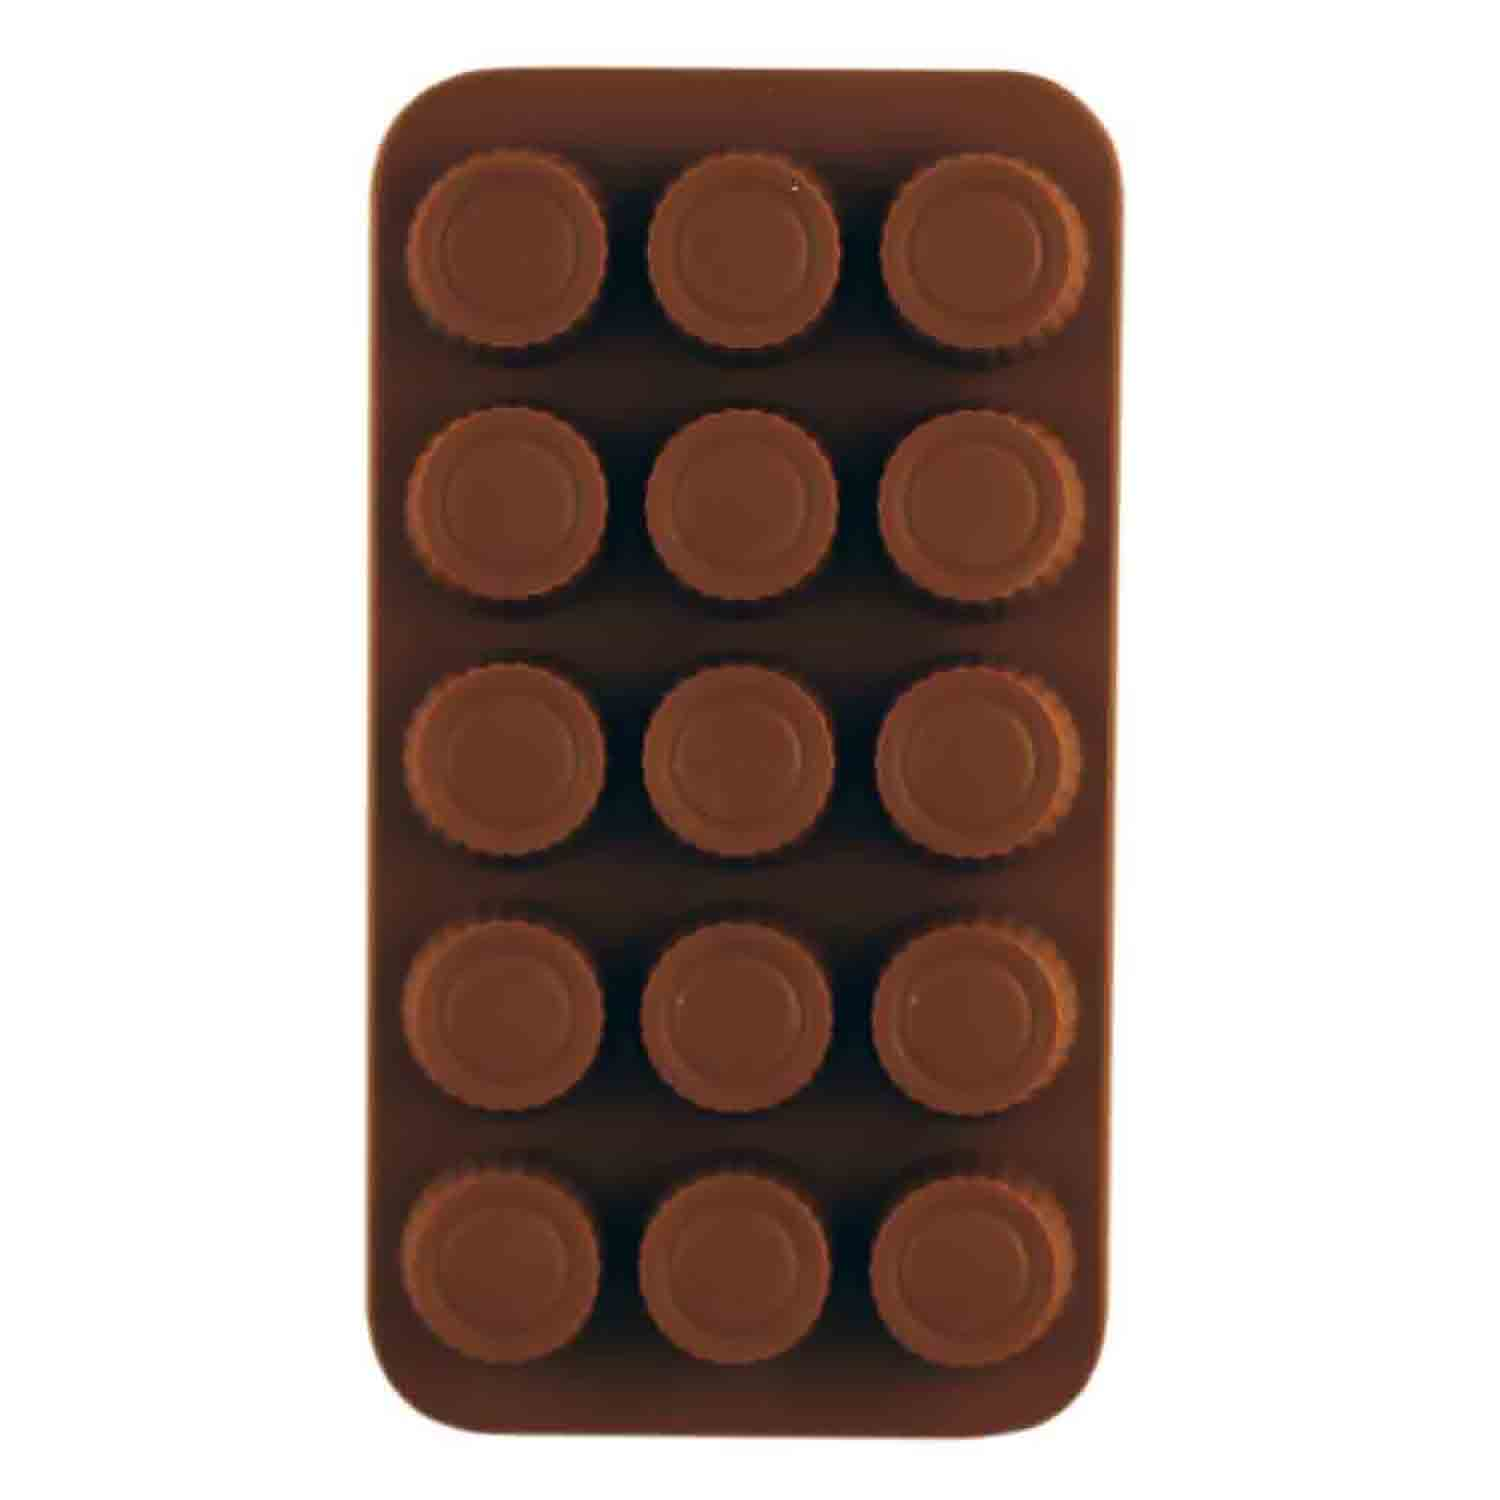 Peanut Butter Cup Silicone Chocolate Candy Mold